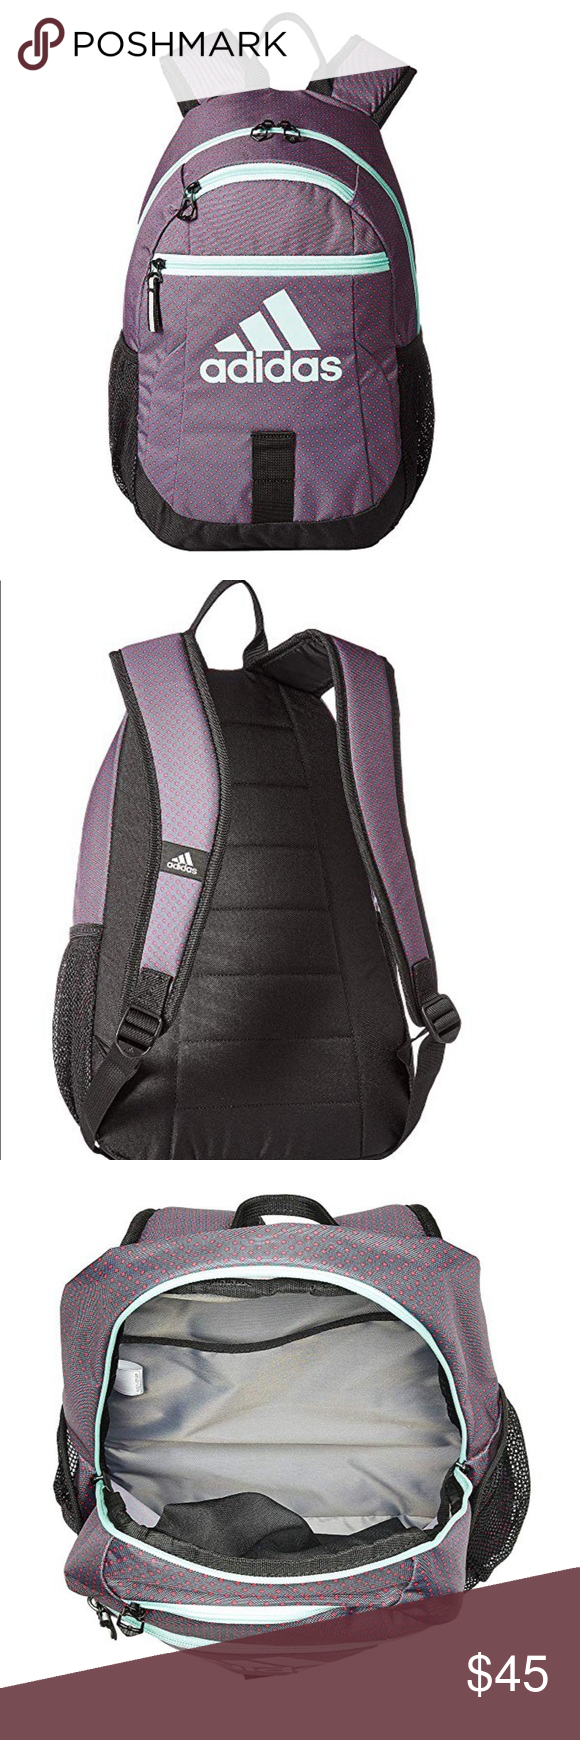 cedb671978d9 Purple mauve ADIDAS backpack NEW Brand new - fun colored ADIDAS backpack. Limited  edition color